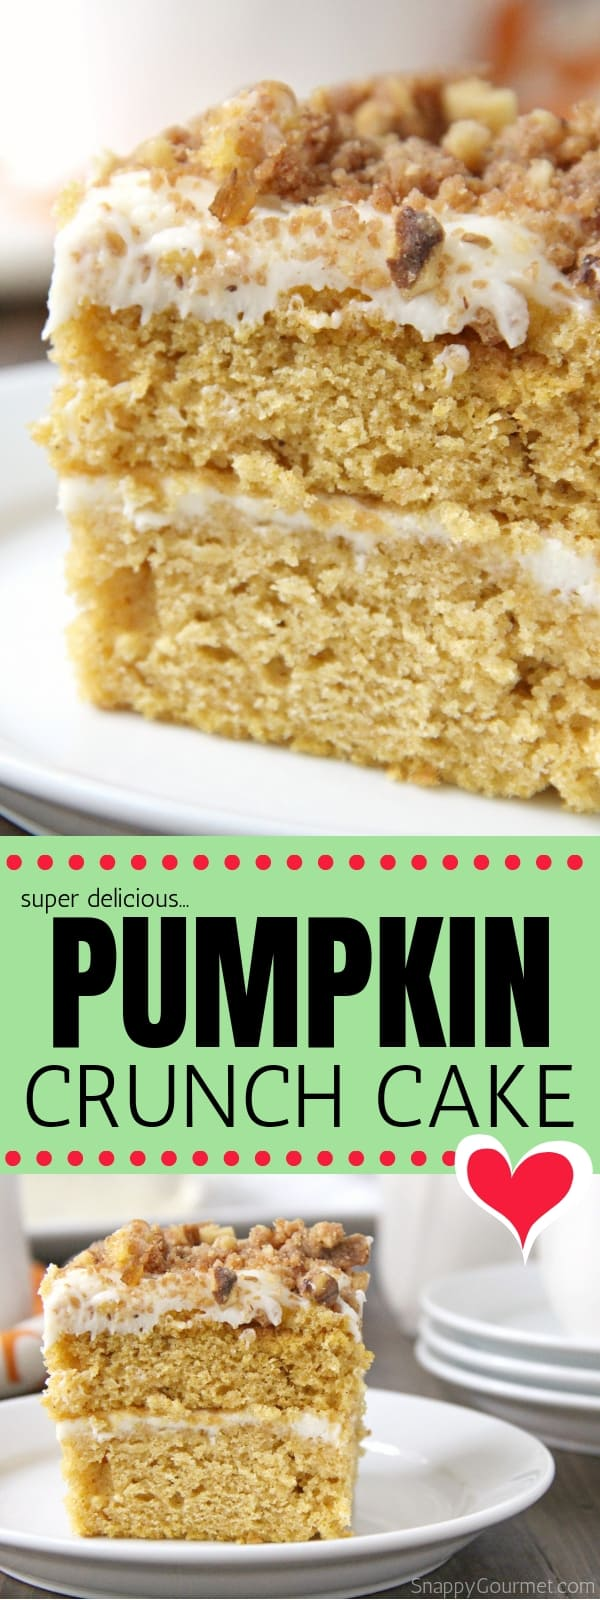 Pumpkin Crunch Cake collage